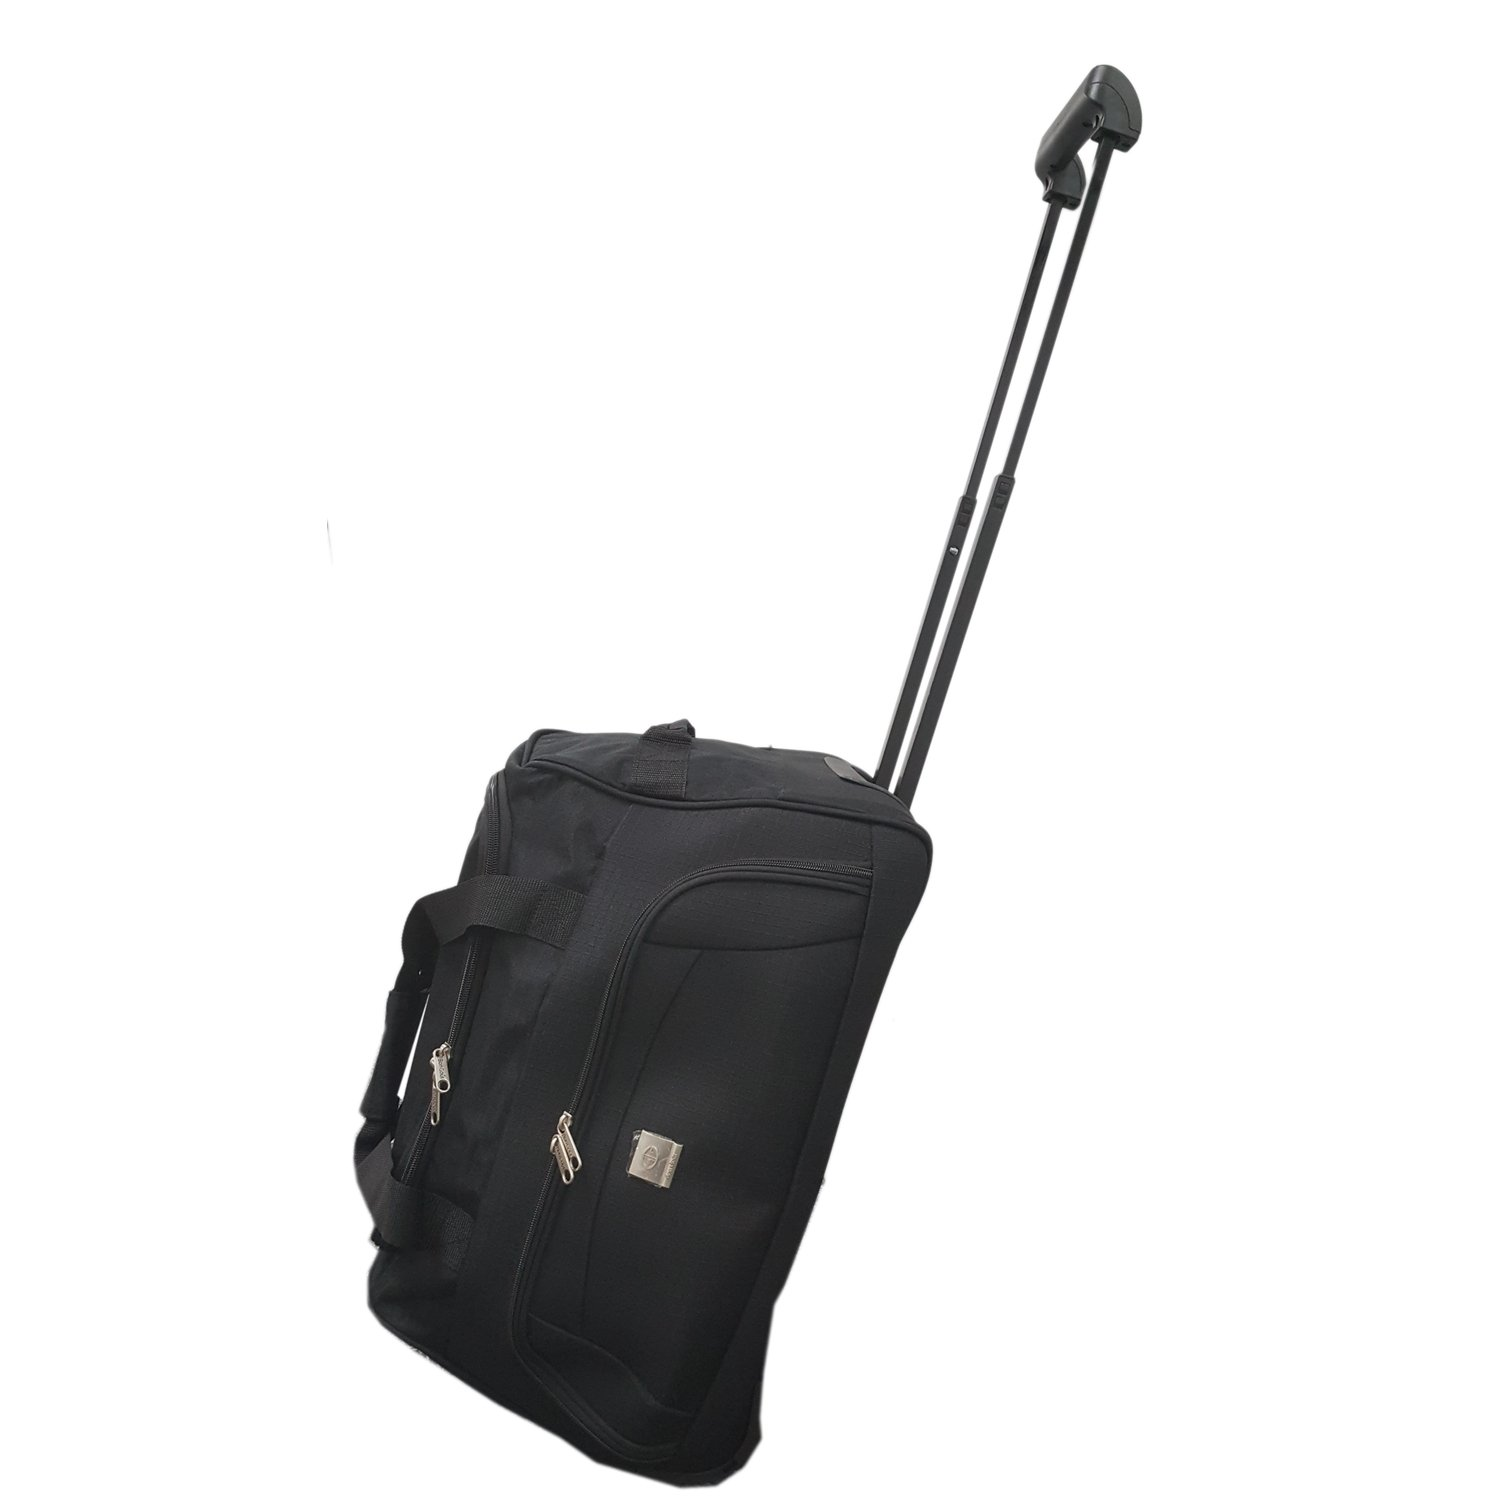 b532de7f2892 Cabin Size Approved 45L Roller Travel Duffel Wheely Bag Hand Luggage  Wheeled Trolley Holdall Duffle Carry Bag with wheels Lightweight Overnight  Telescopic ...